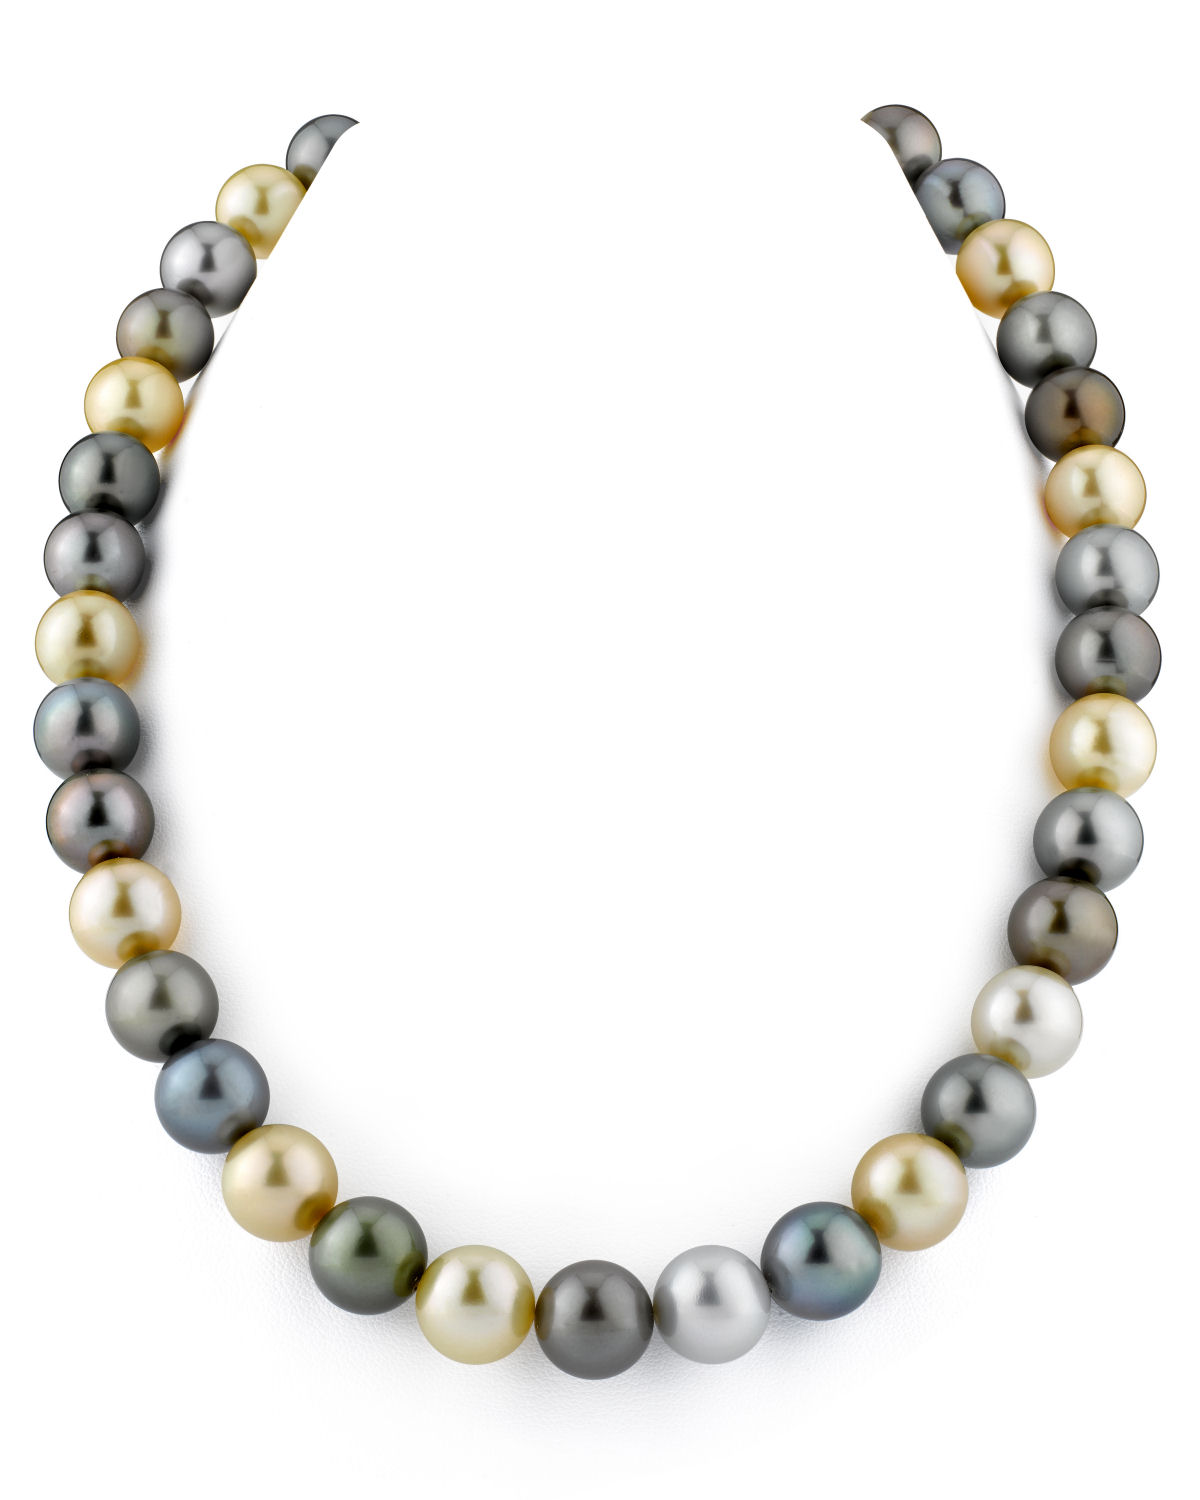 14K Gold 11-12mm Tahitian & Golden Multicolor Cultured Pearl Necklace AAAA Quality by The Pearl Source